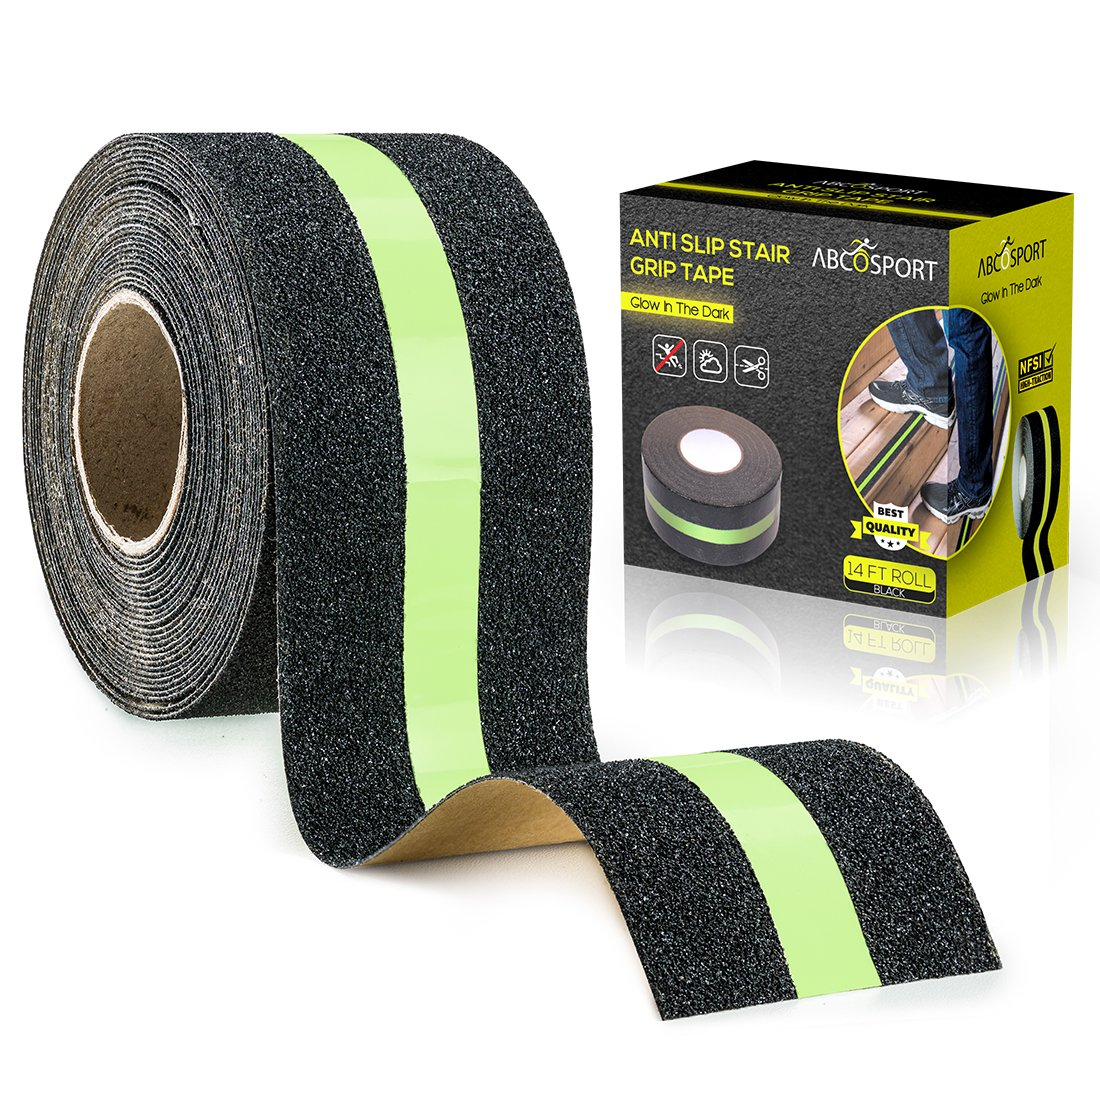 """Anti Slip Grip Tape – Glow in Dark for Local Illumination Improves Grip and Prevents Risk of Slippage on Stairs or Other Slippery Surfaces 2"""" Wide and 14' Long Roll Keeps You Safe"""